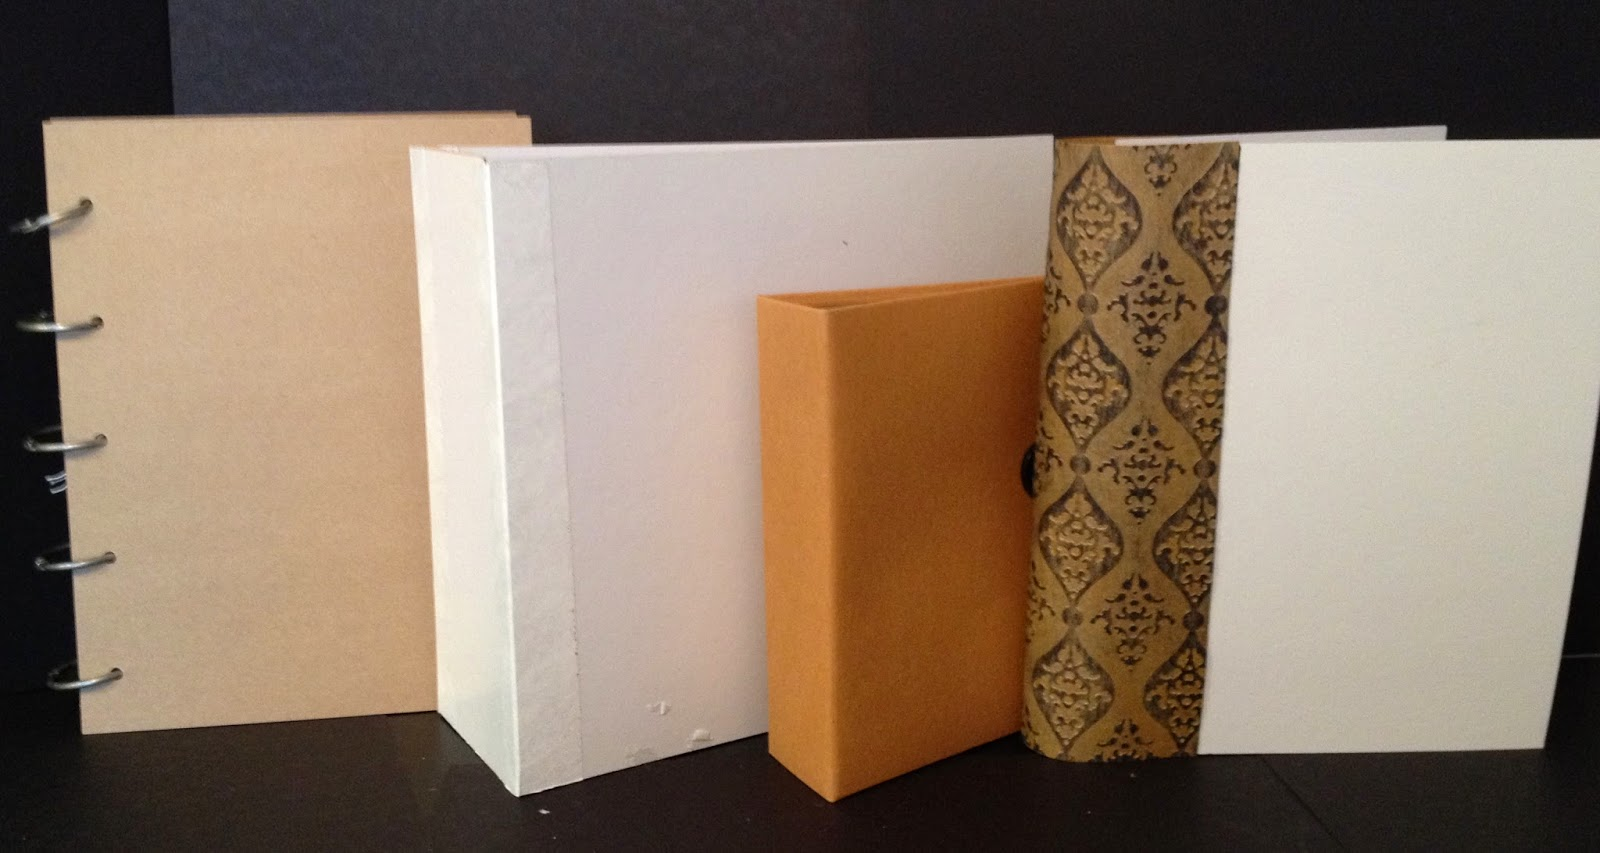 How To Make A Book Cover Using Paper ~ How to make book covers out of paper bags cathodic f b